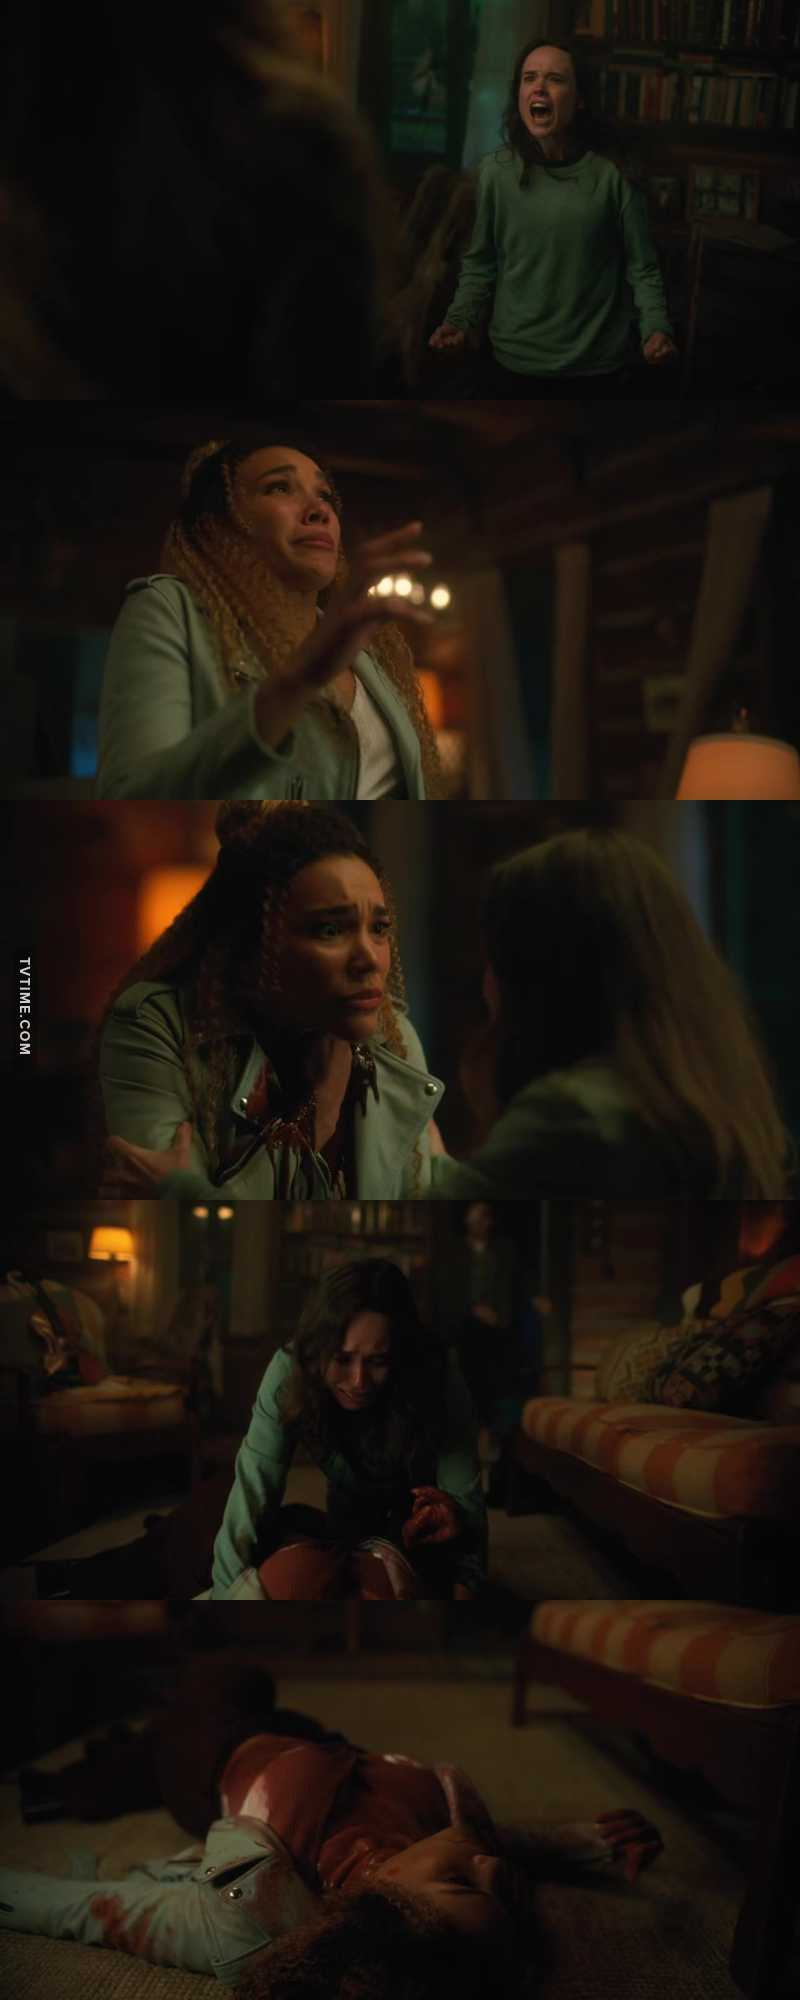 😱😱😱 I didn't see that coming. She killed her sister. She killed Allison.  😱😱😱